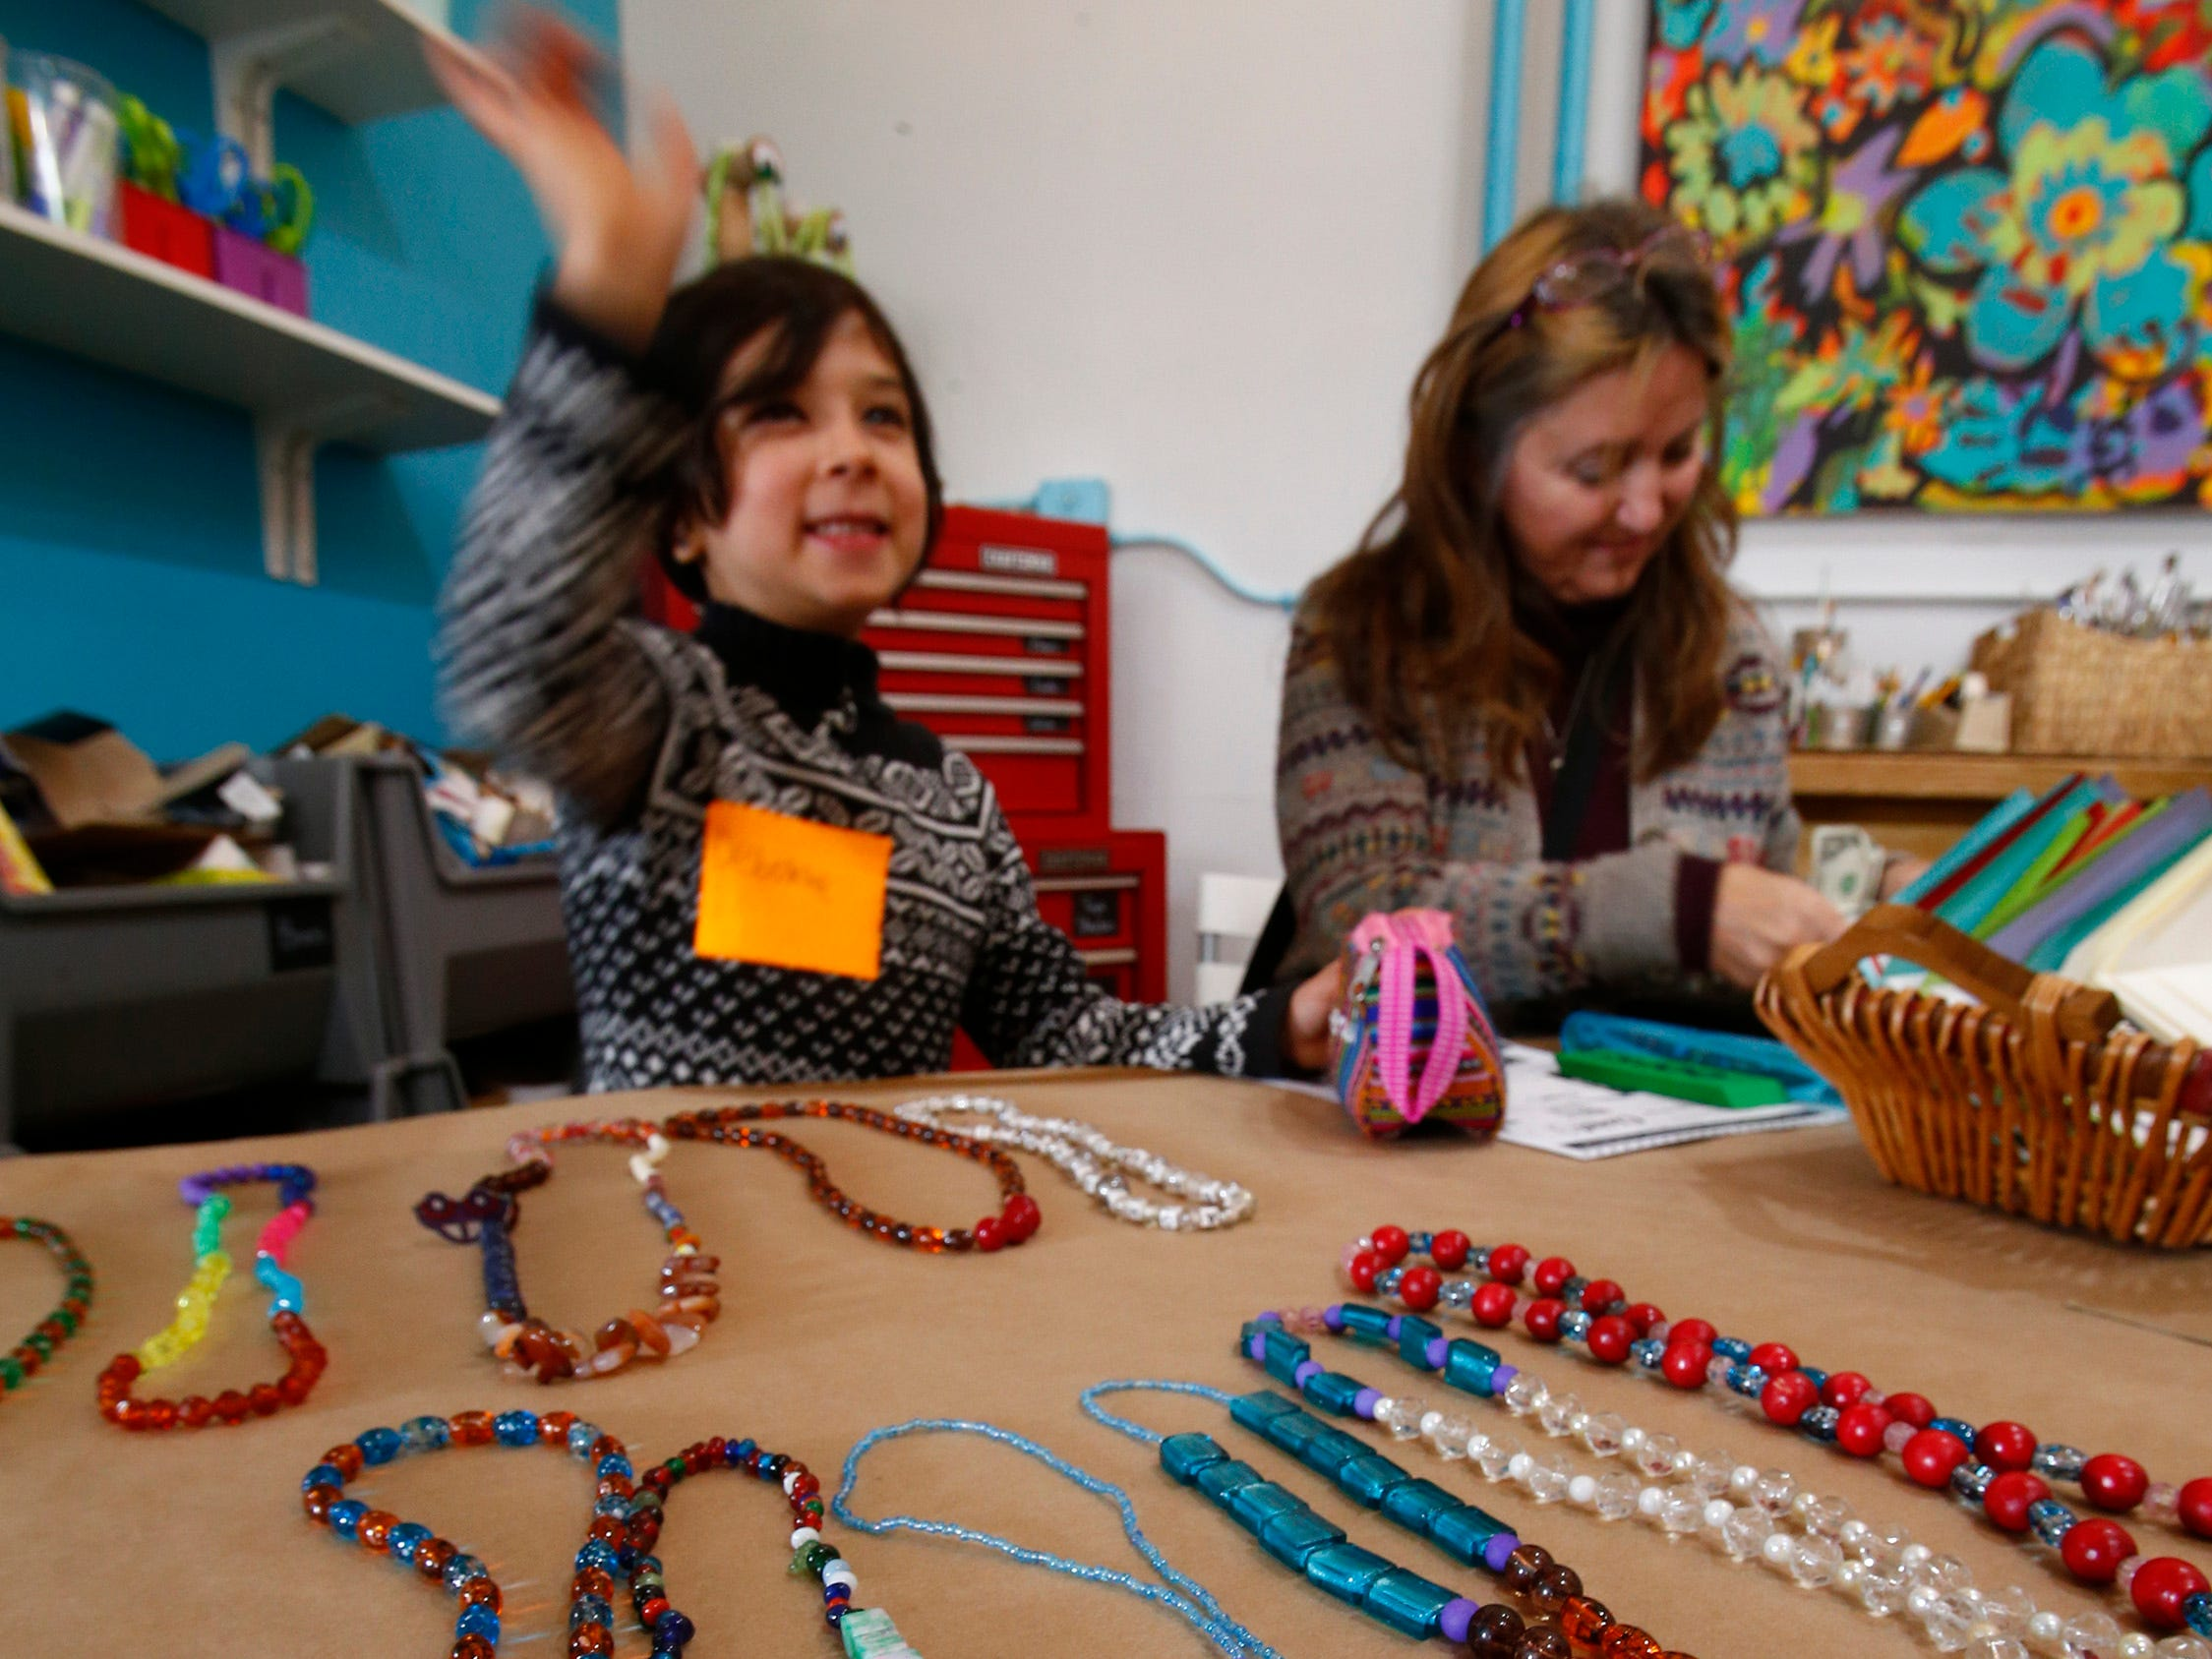 Debonne Melby-Gibbons waves to a friend while selling necklaces with Leslie Gibbon, Debonne's grandmother from Iowa, during the Cloud 9 Workshop's Kidpreneur Fair that featured 15 children in grades 1 through 5 selling products they created.